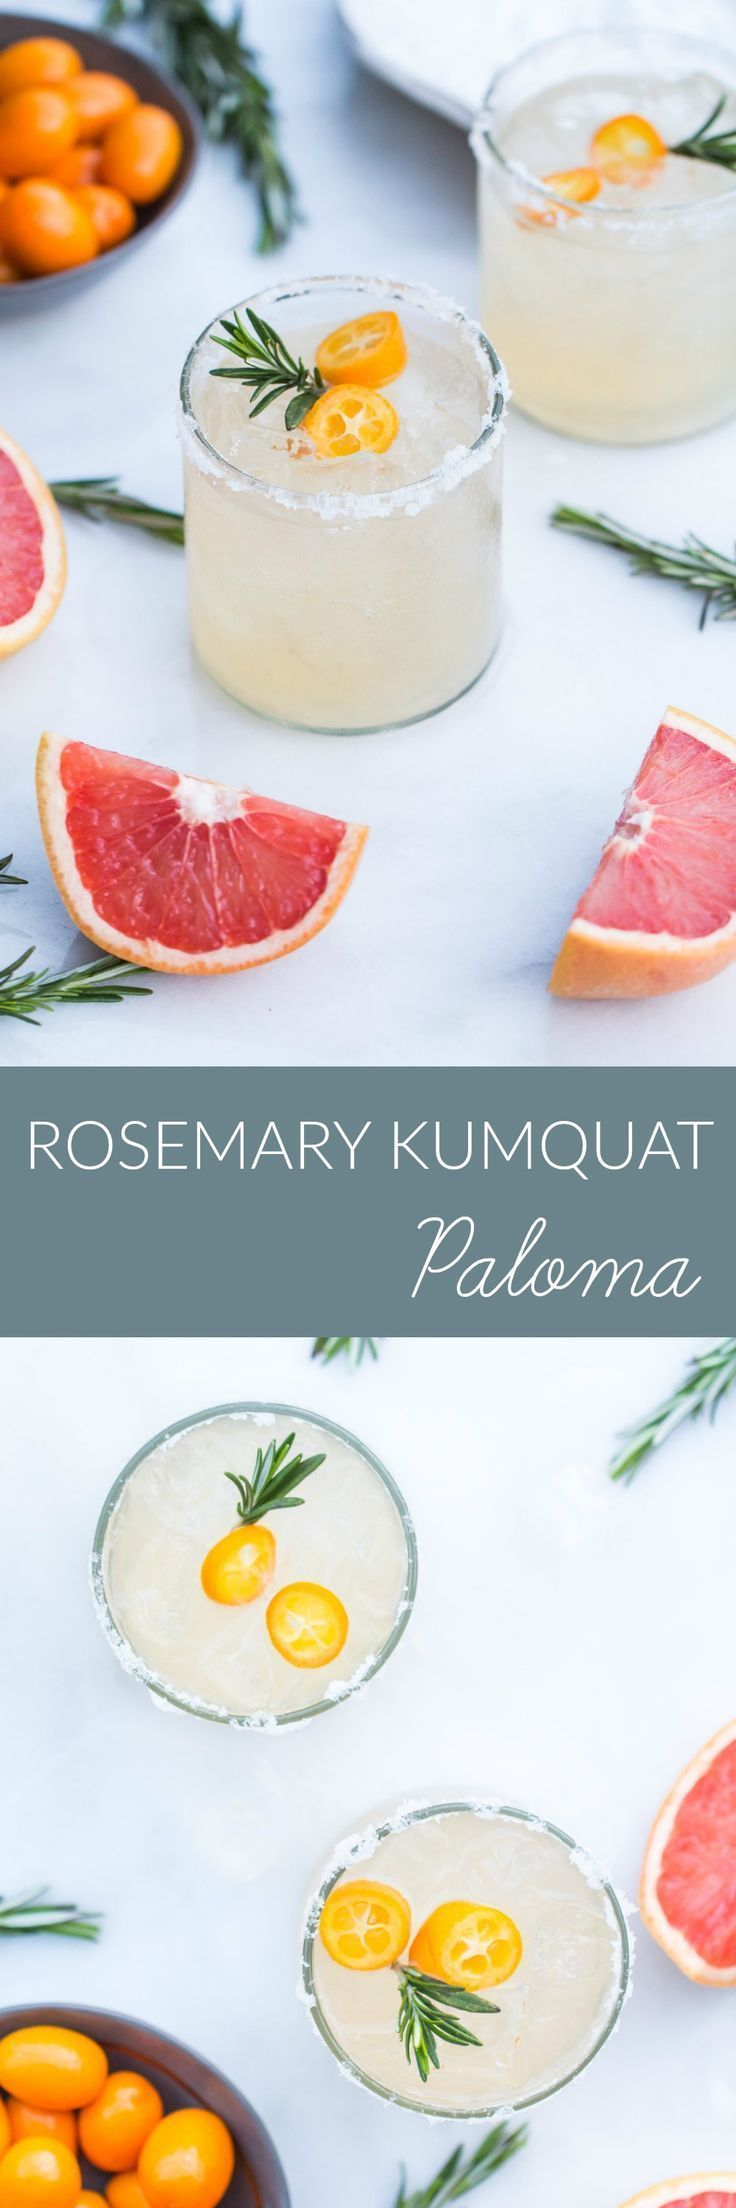 Try a Rosemary Kumquat Paloma, a seasonal take on the tequila and grapefruit based cocktail, elevated with rosemary simple syrup and muddled kumquats.